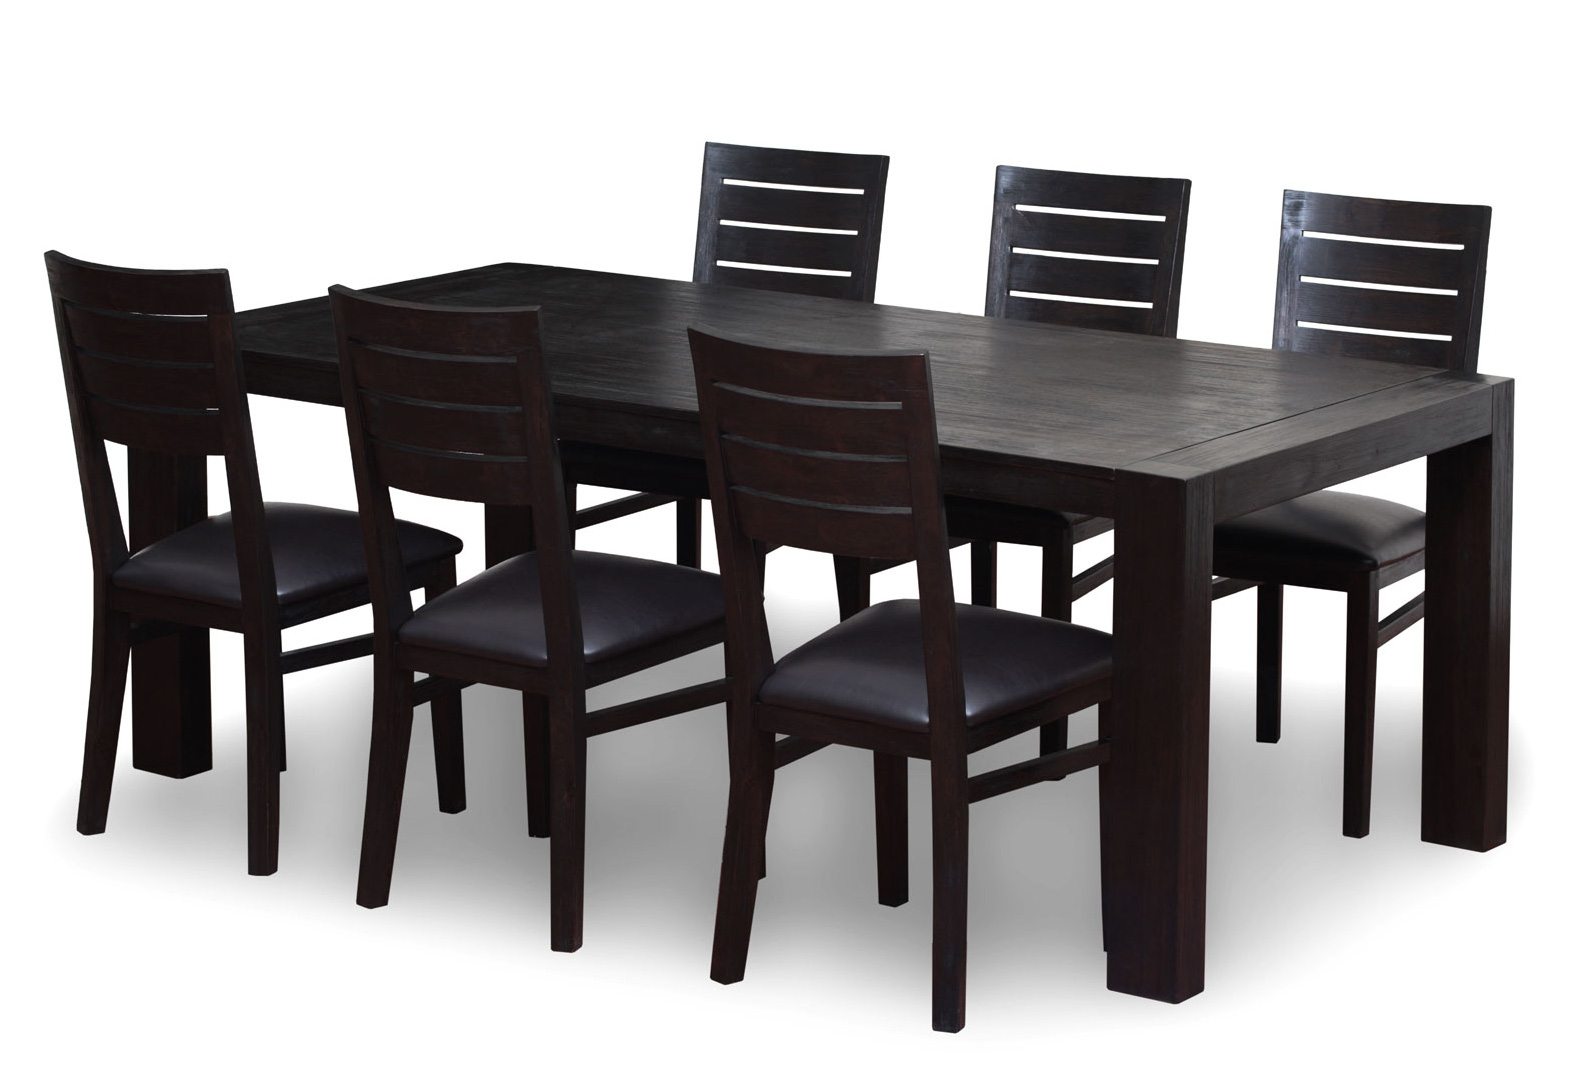 Dining tables prices